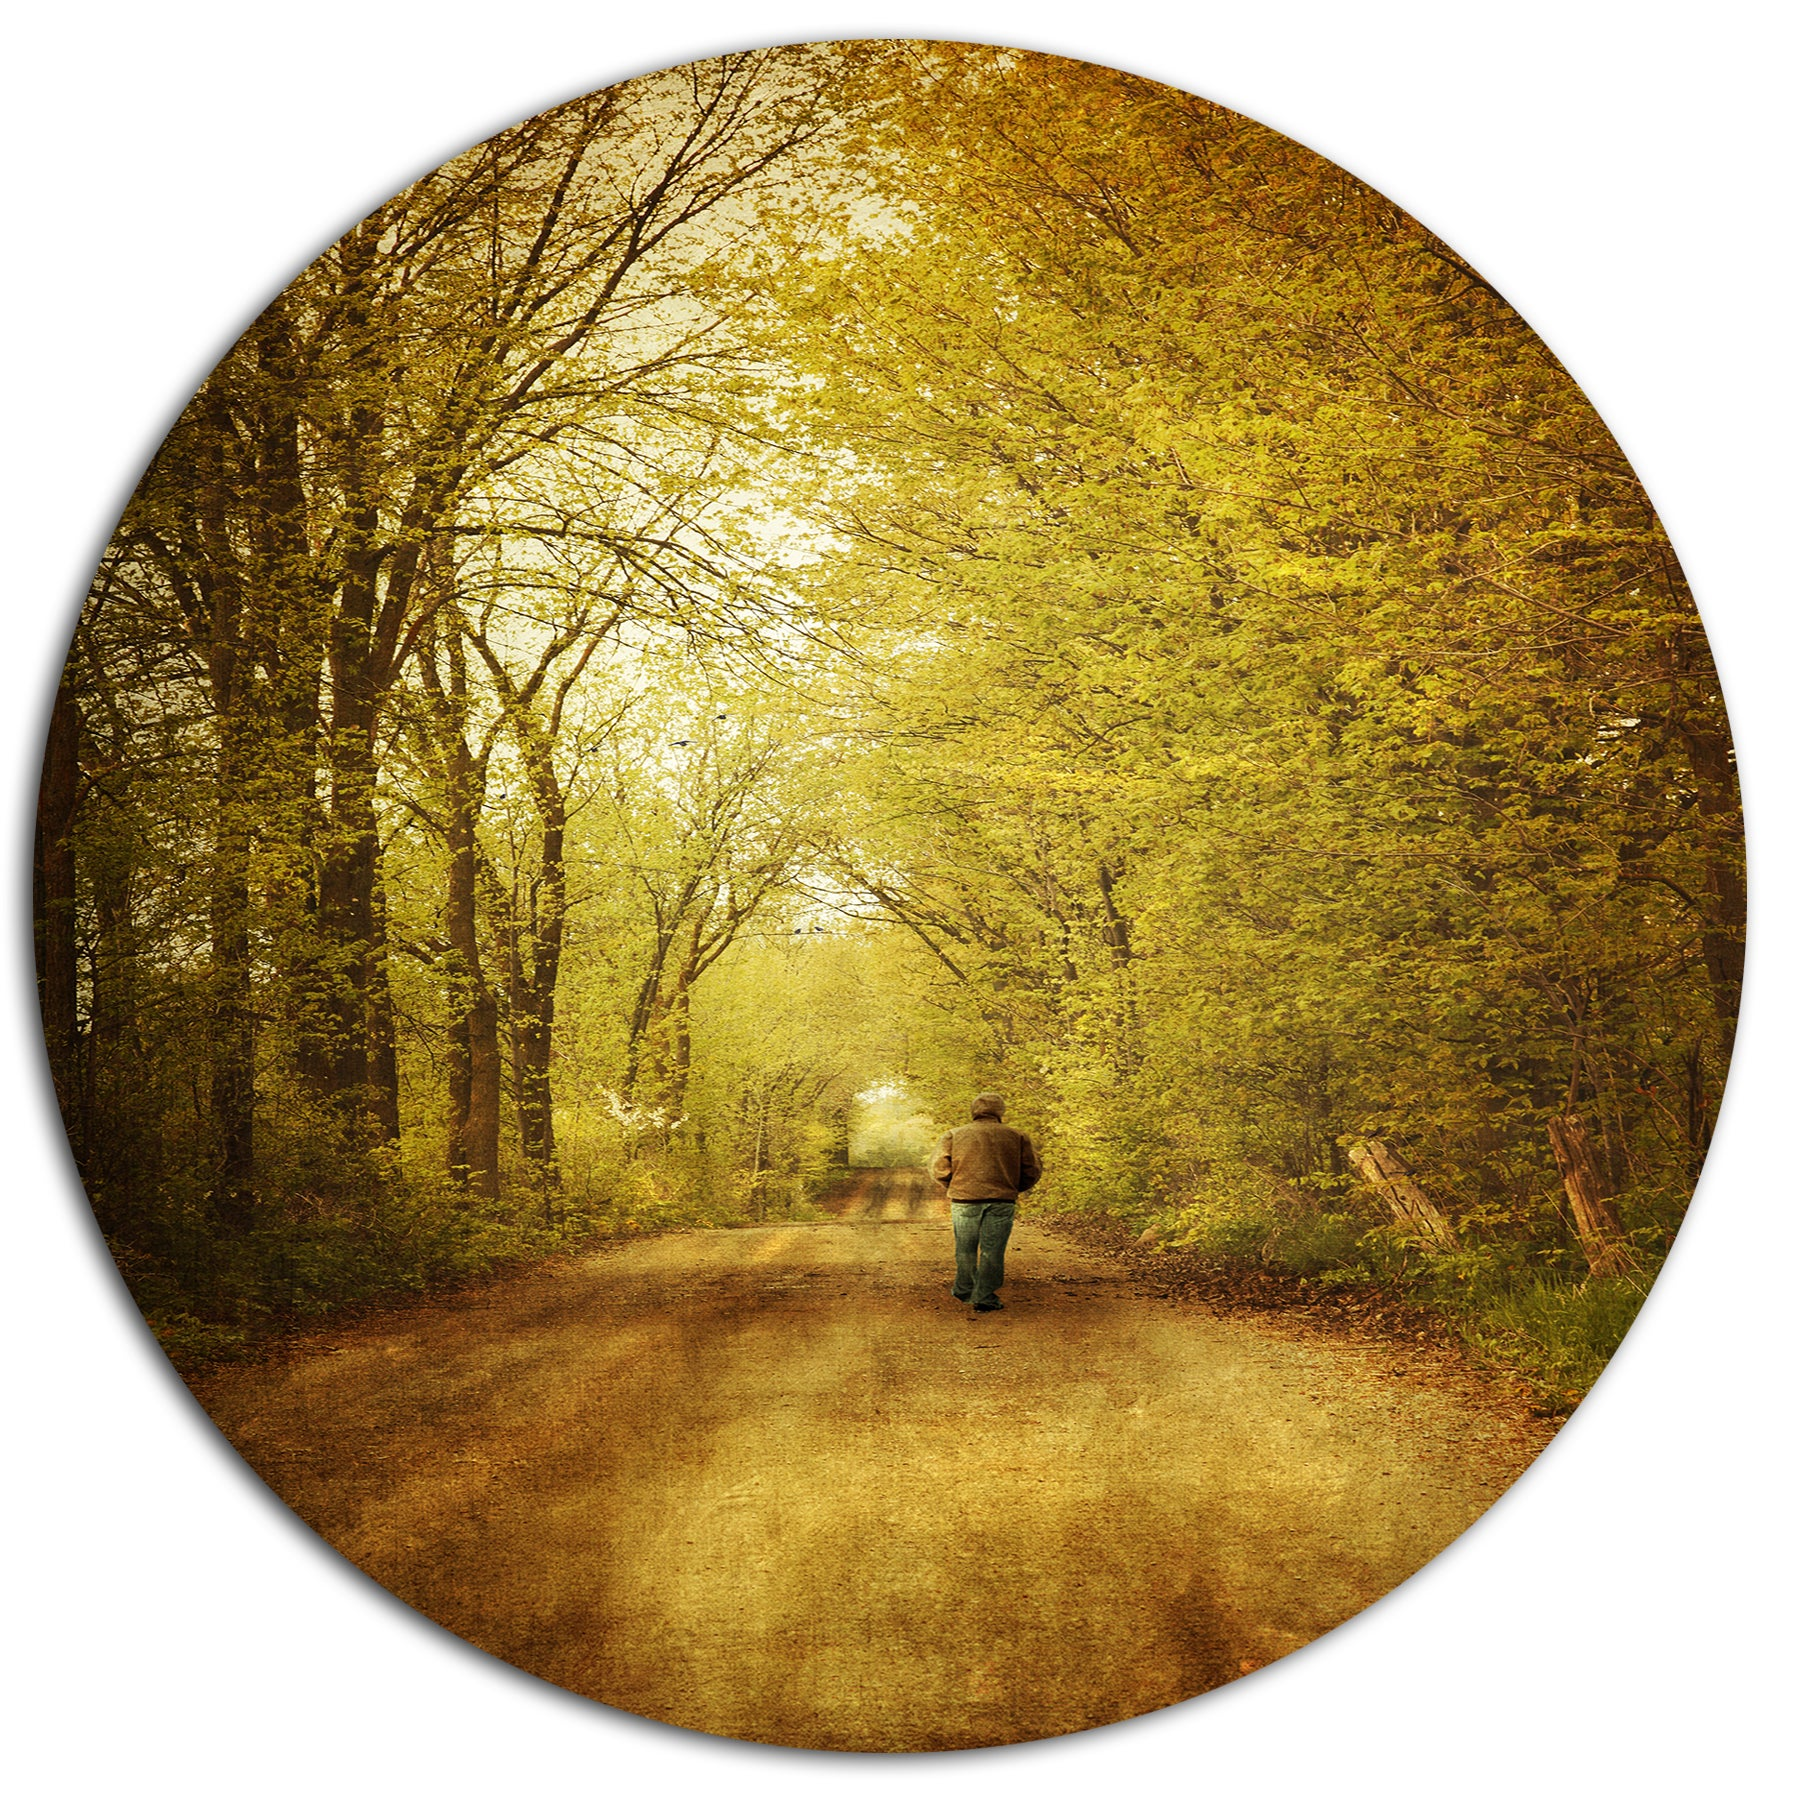 Designart \'Man Walking Lonely on Rural Road\' Landscape Metal Wall ...